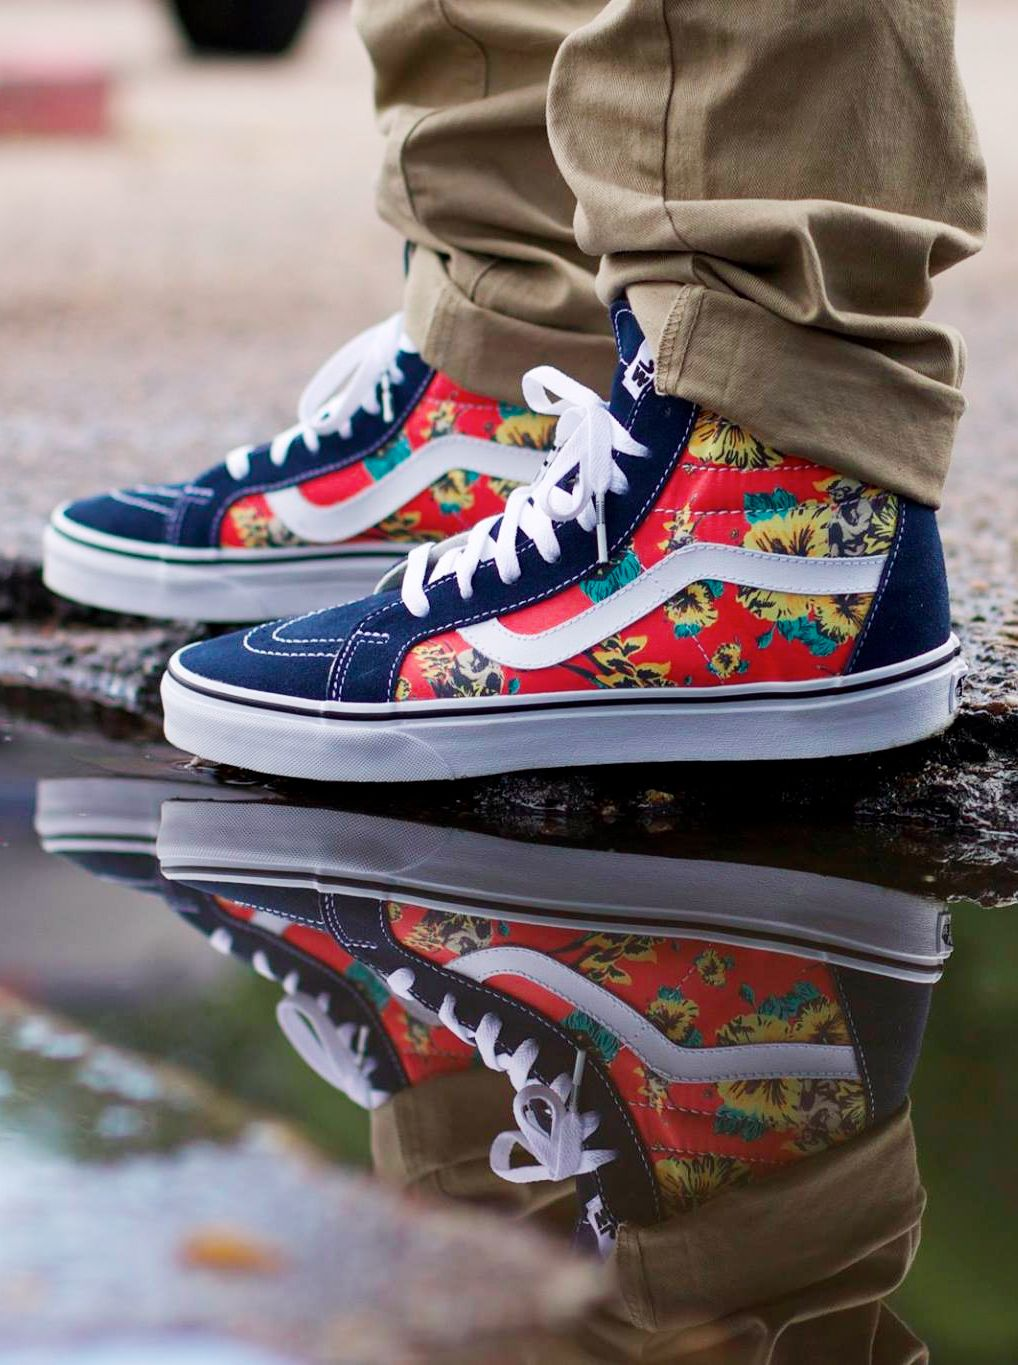 95c802f0eff1c8 Star Wars x Vans Sk8-Hi Reissue  Yoda Aloha   karmaloop has some of the  collection - Rep code